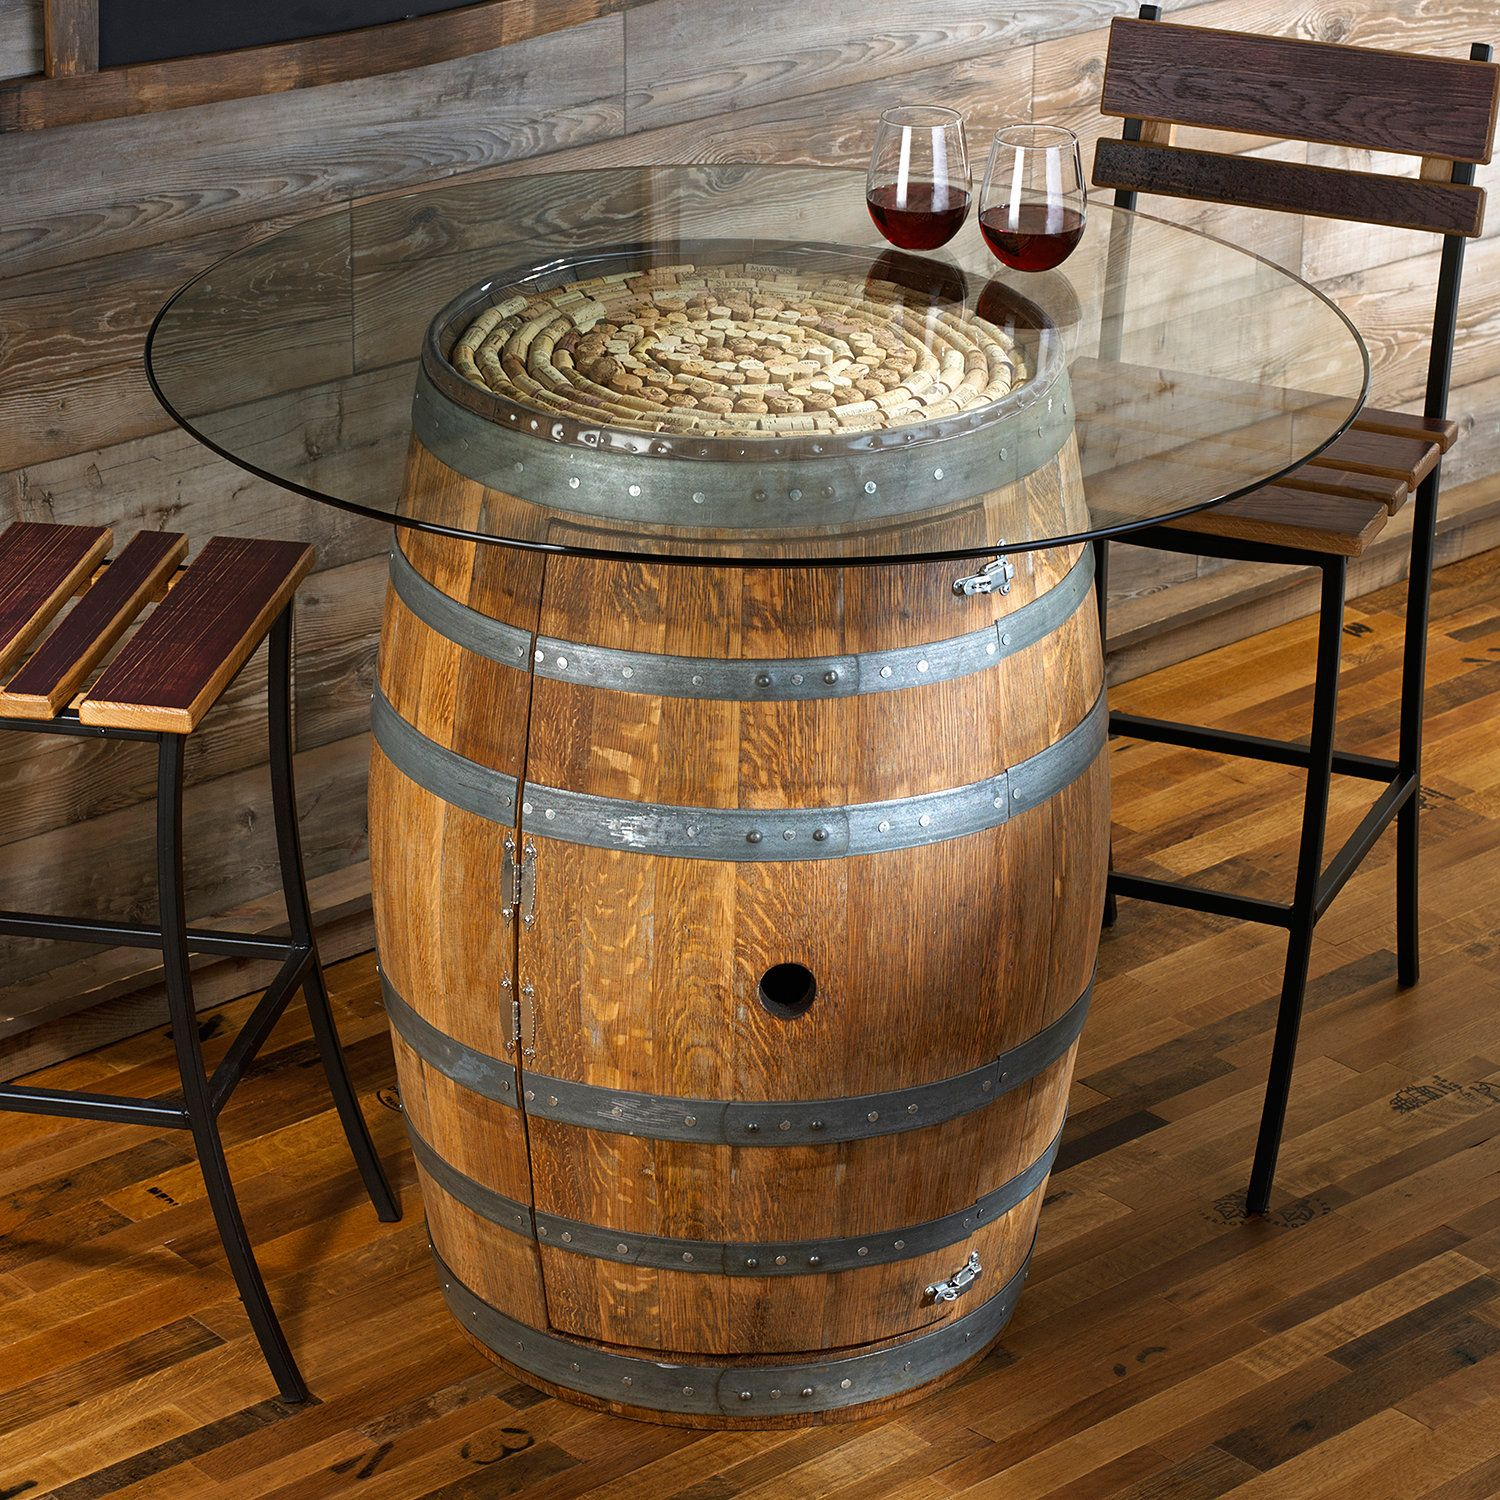 Reclaimed Barrel Dining Table Gorgeous DIY Wine Barrel Coffee